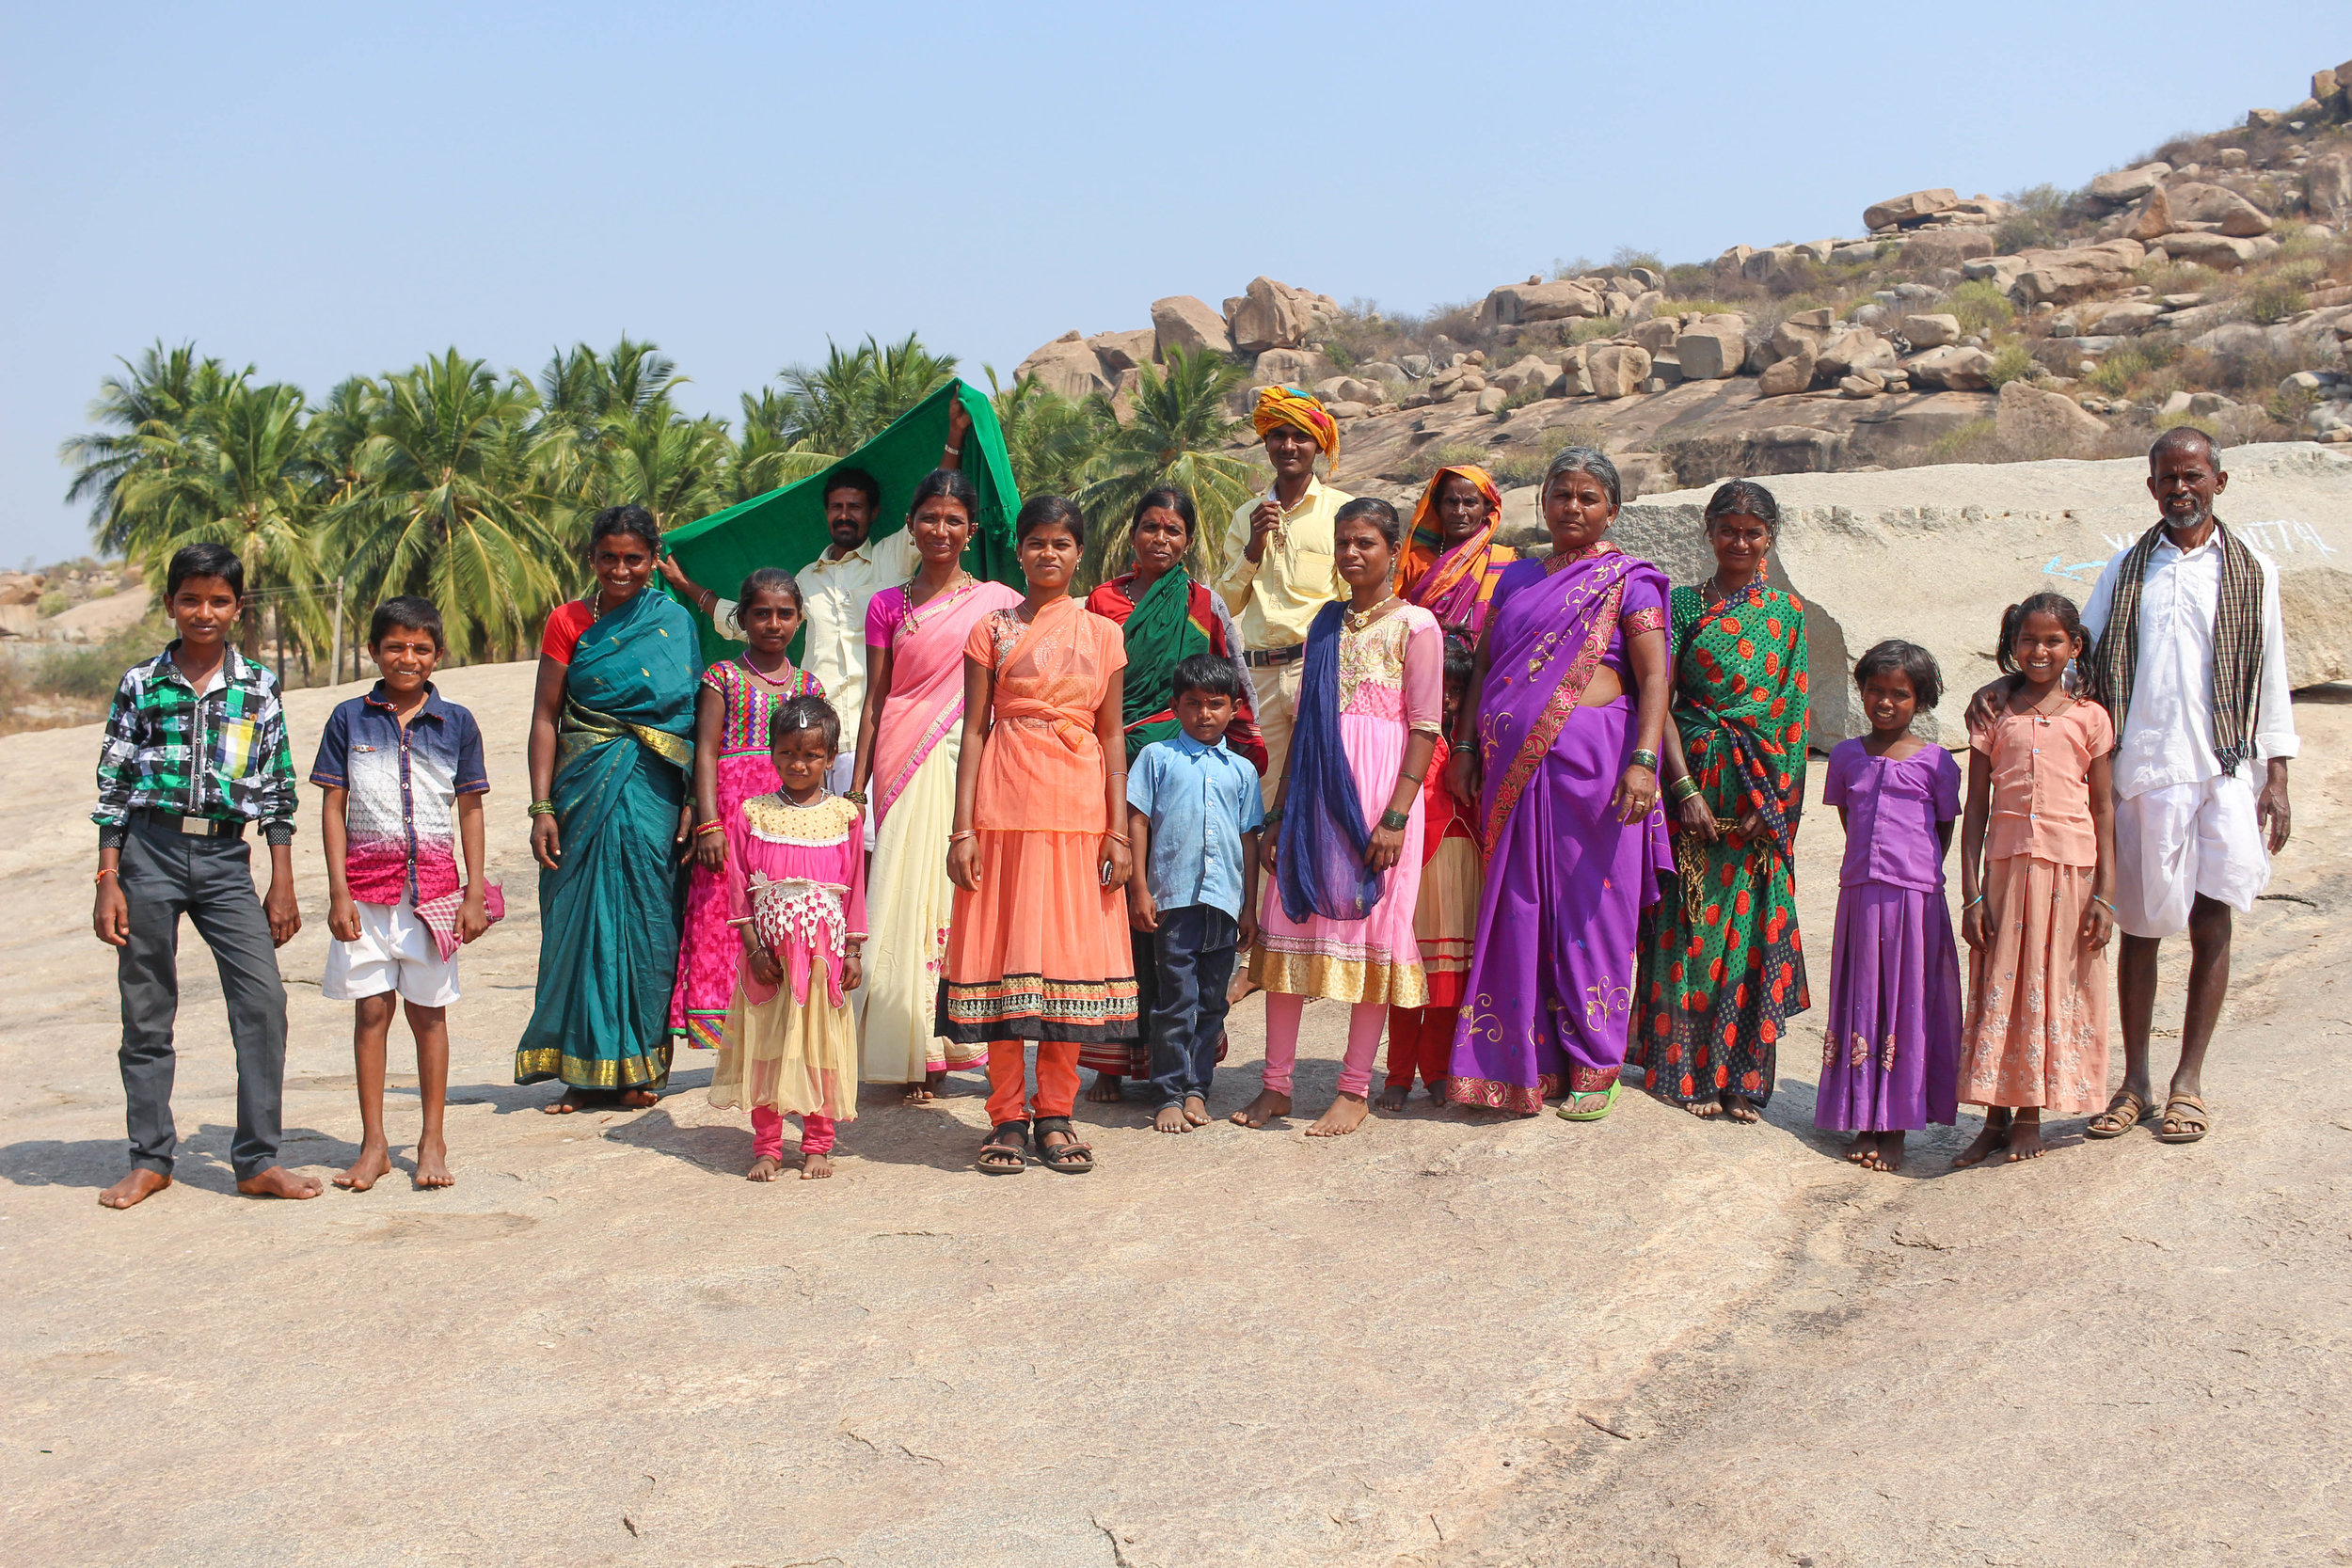 A family visiting Hampi's temples and making their way to a huge wishing tree nearby